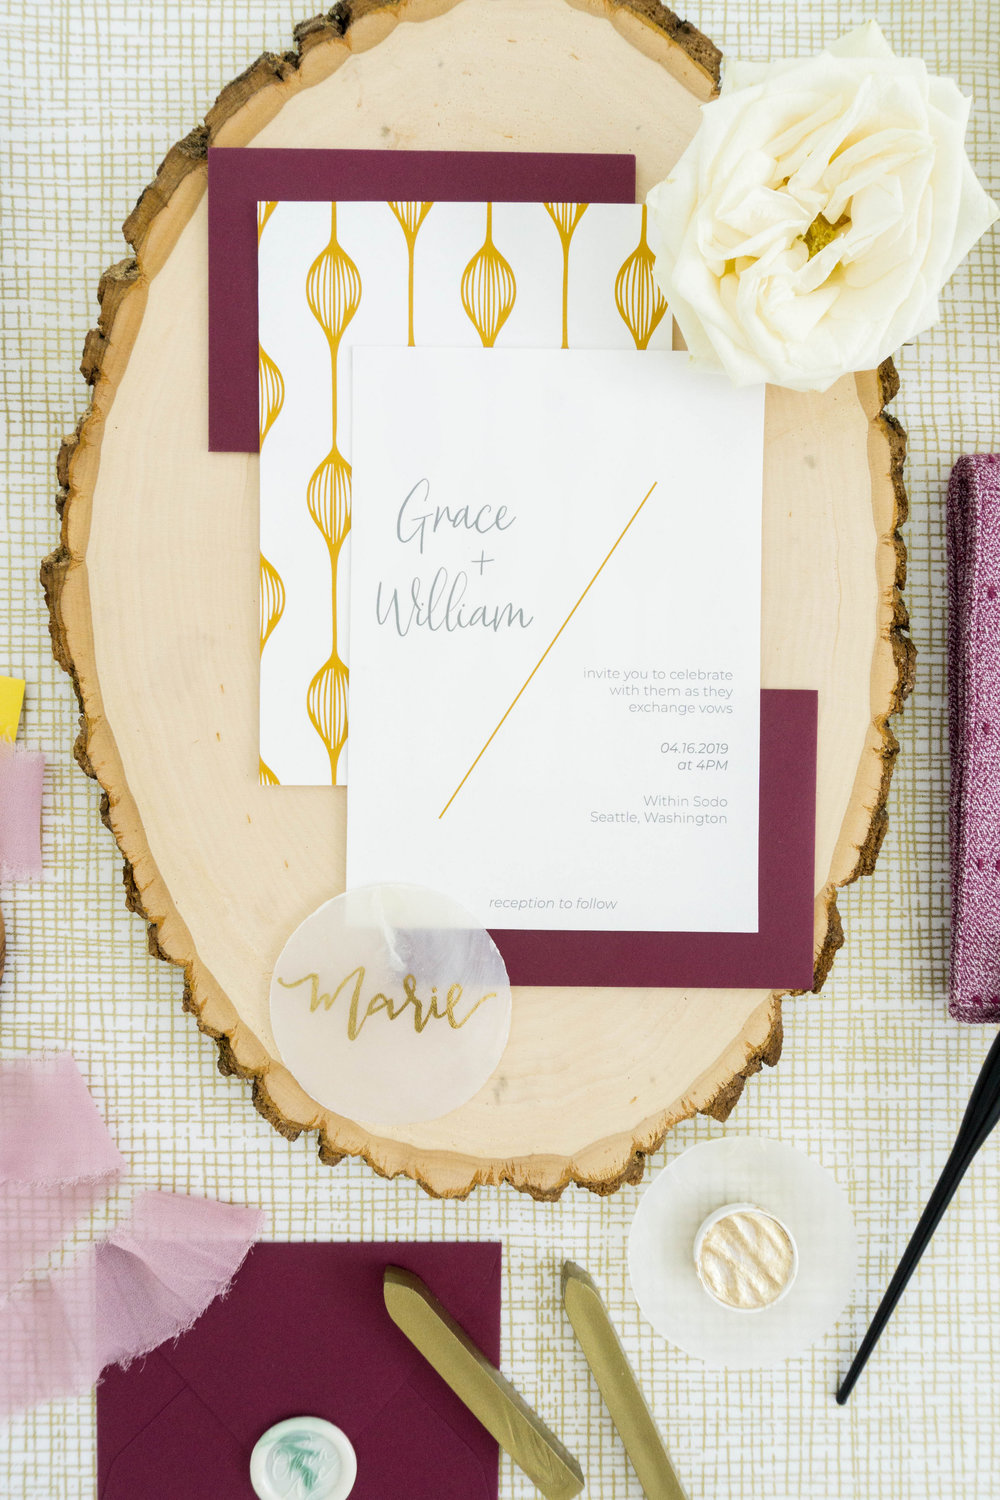 love-fern-design-studio-custom-wedding-invitations-for-the-modern-couple-modern-calligraphy-in-seattle-washington-custom-wedding-stationery-modern-and-minimal-invitation-suite